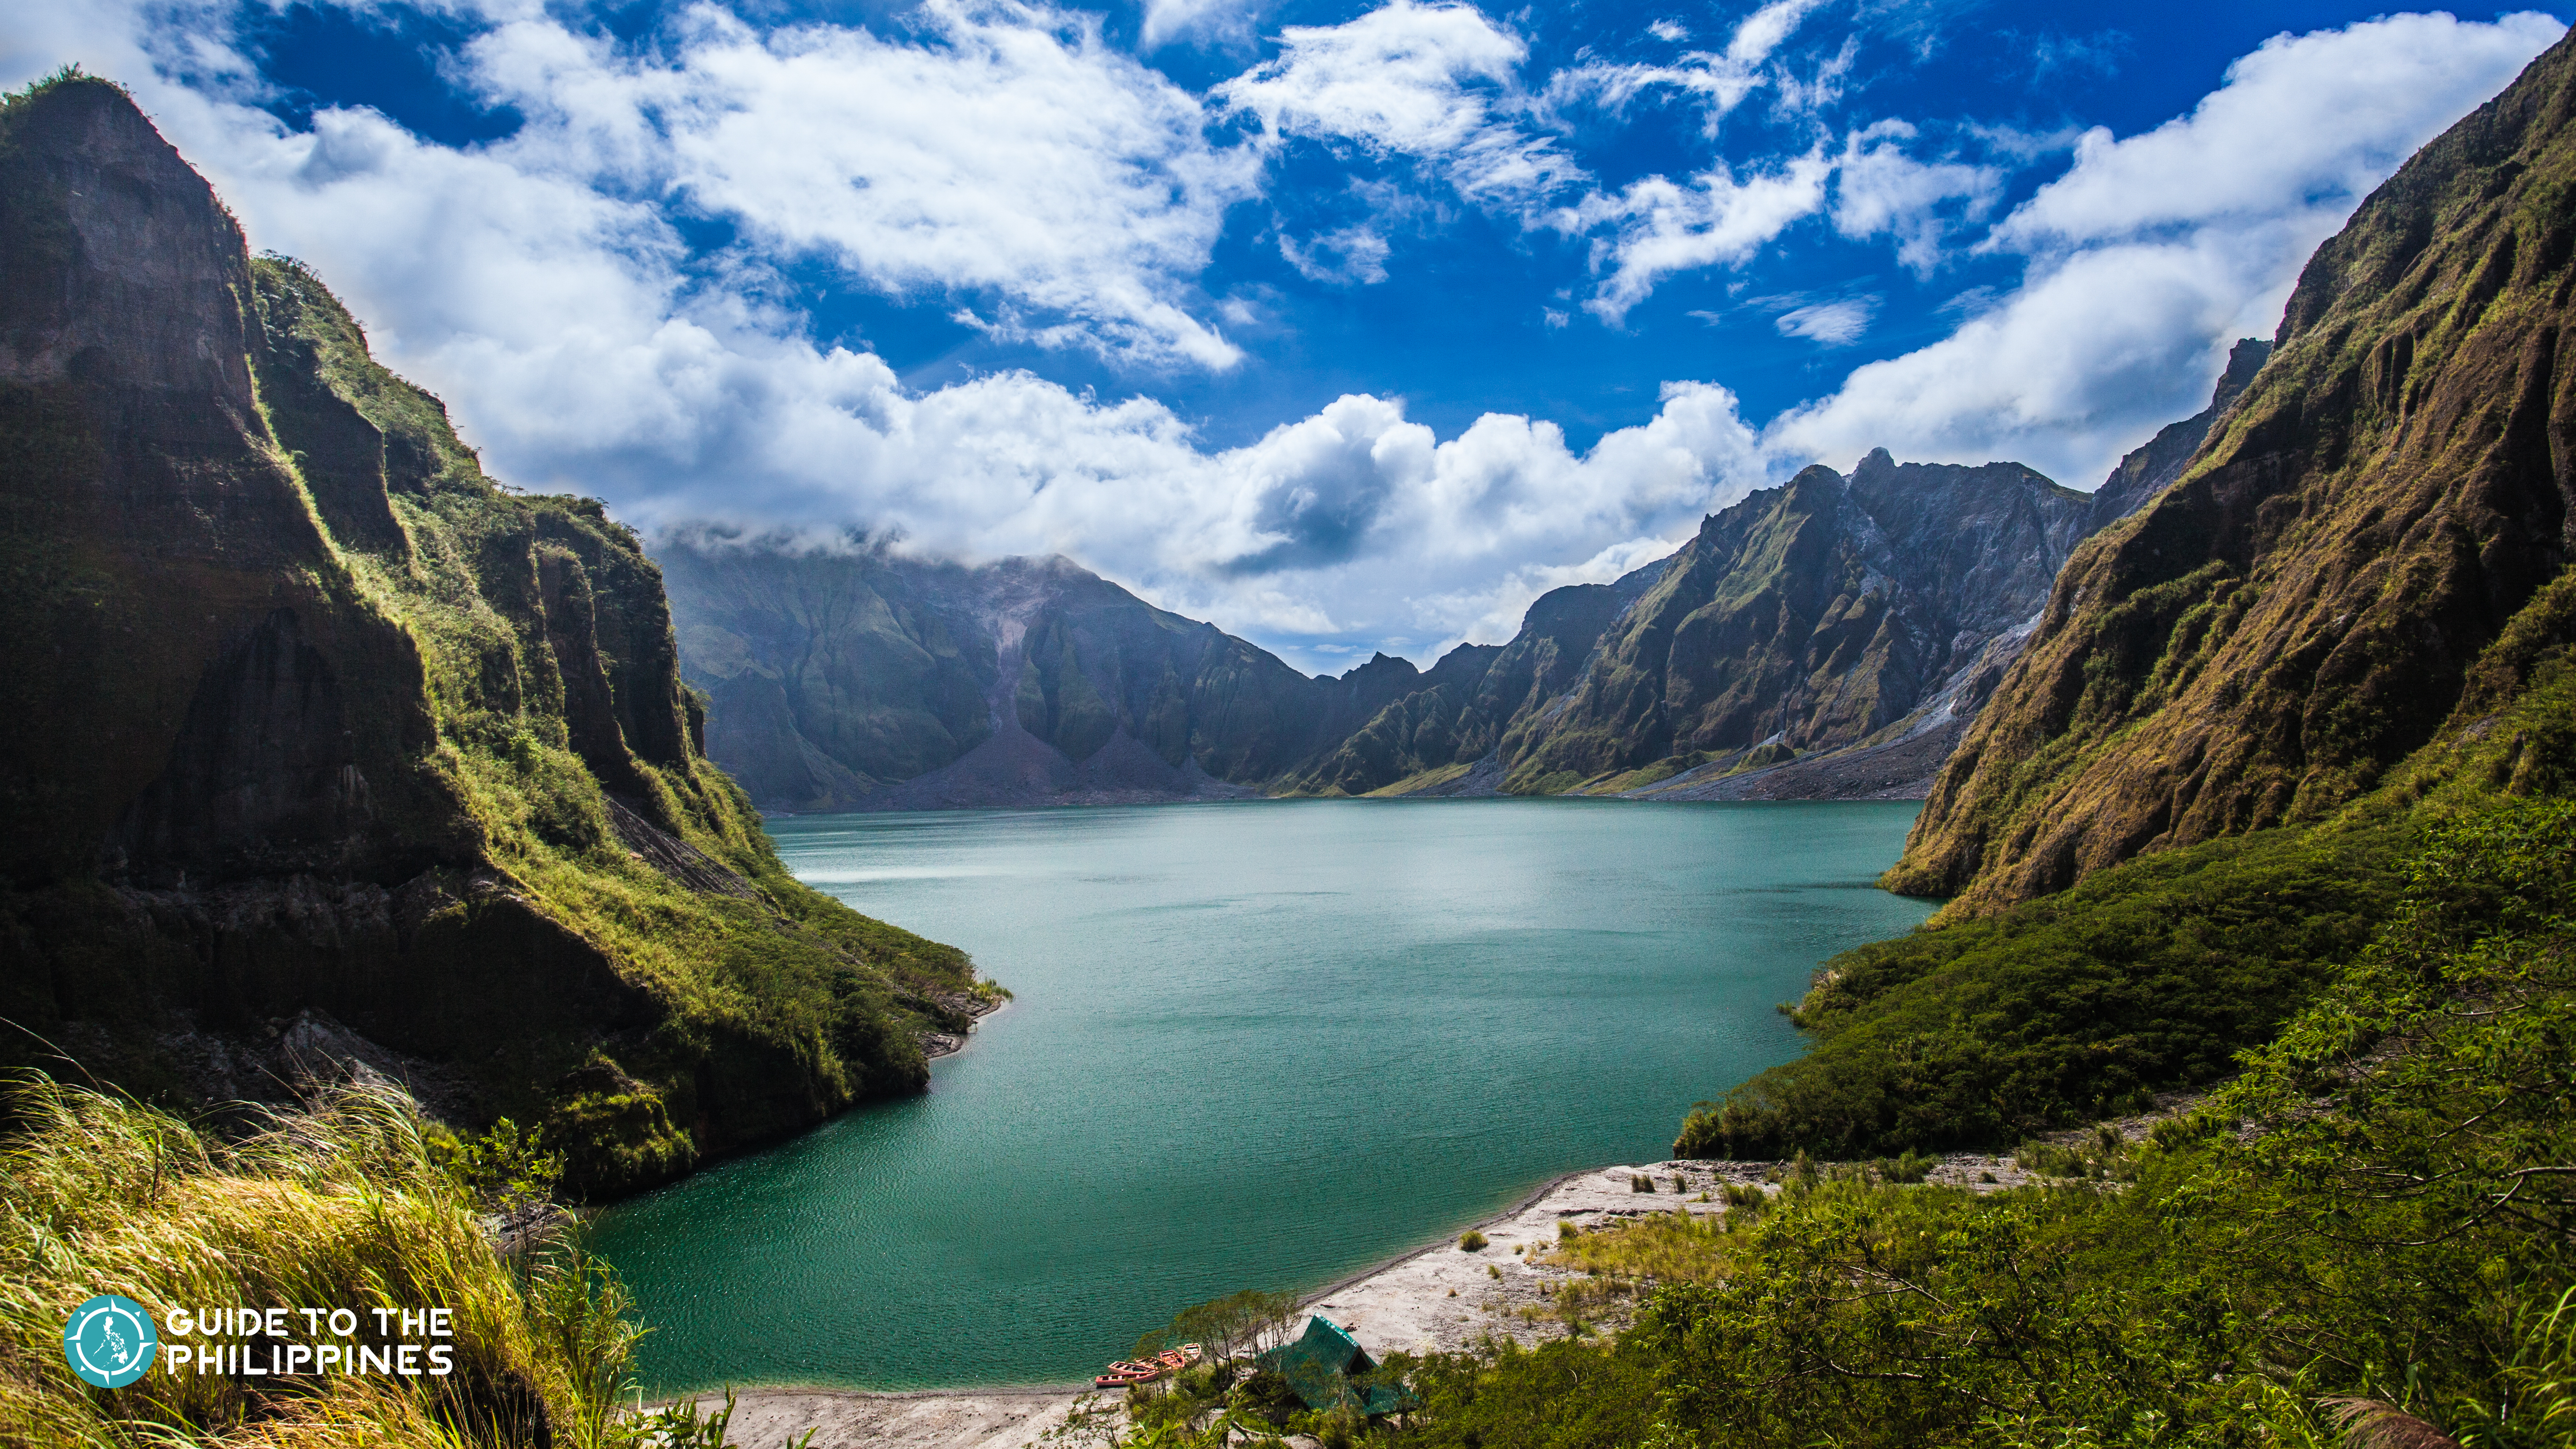 View of the Mt. Pinatubo Crater Lake